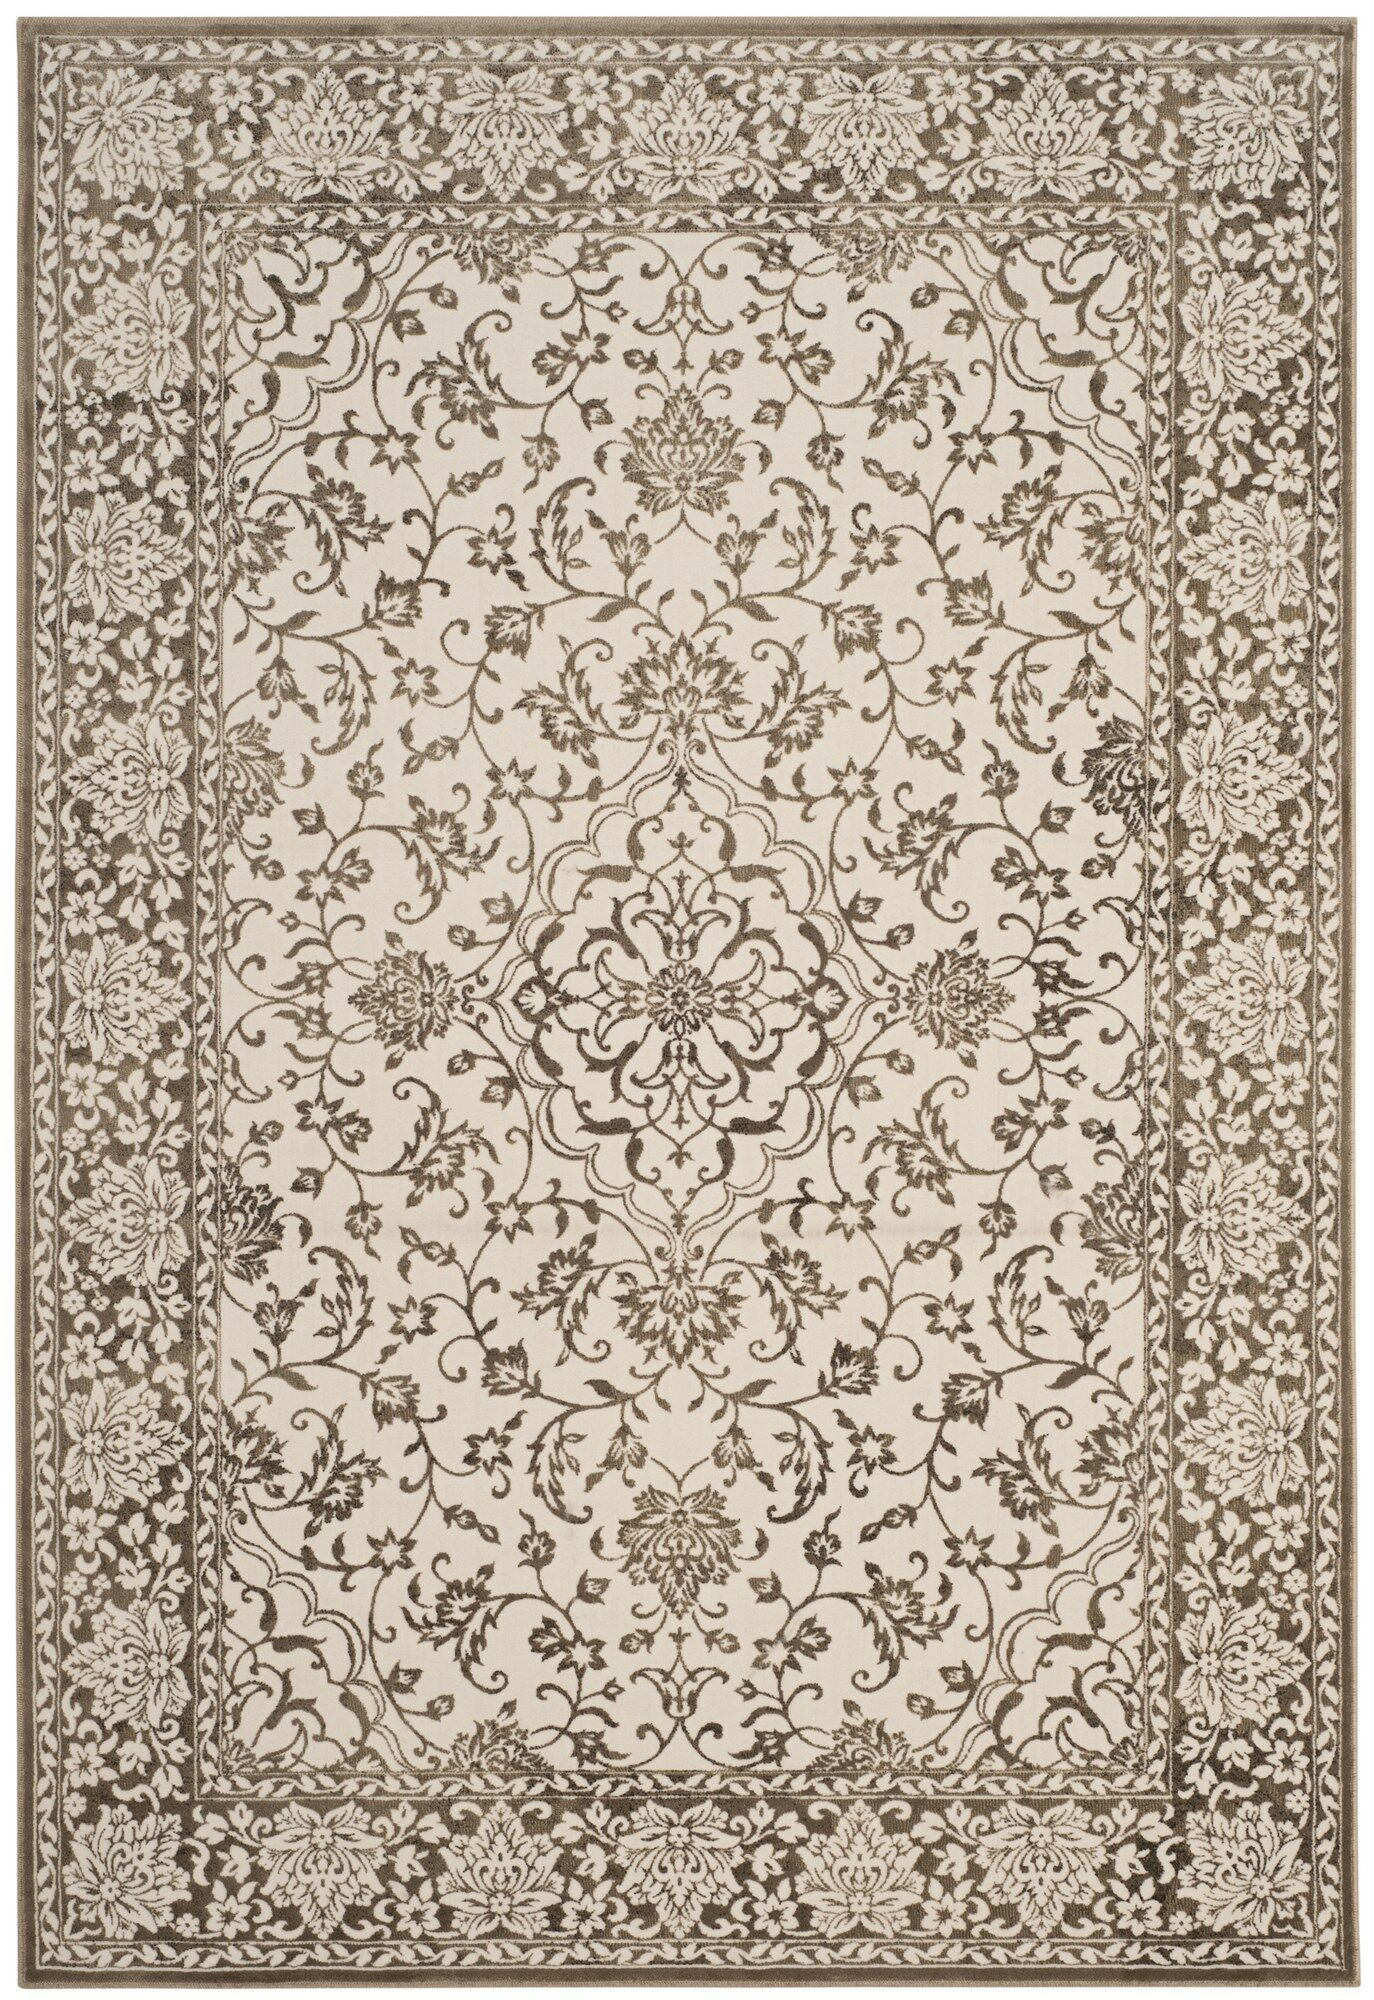 Forestburgh Brown/Cream Area Rug Rug Size: Rectangle 5'1